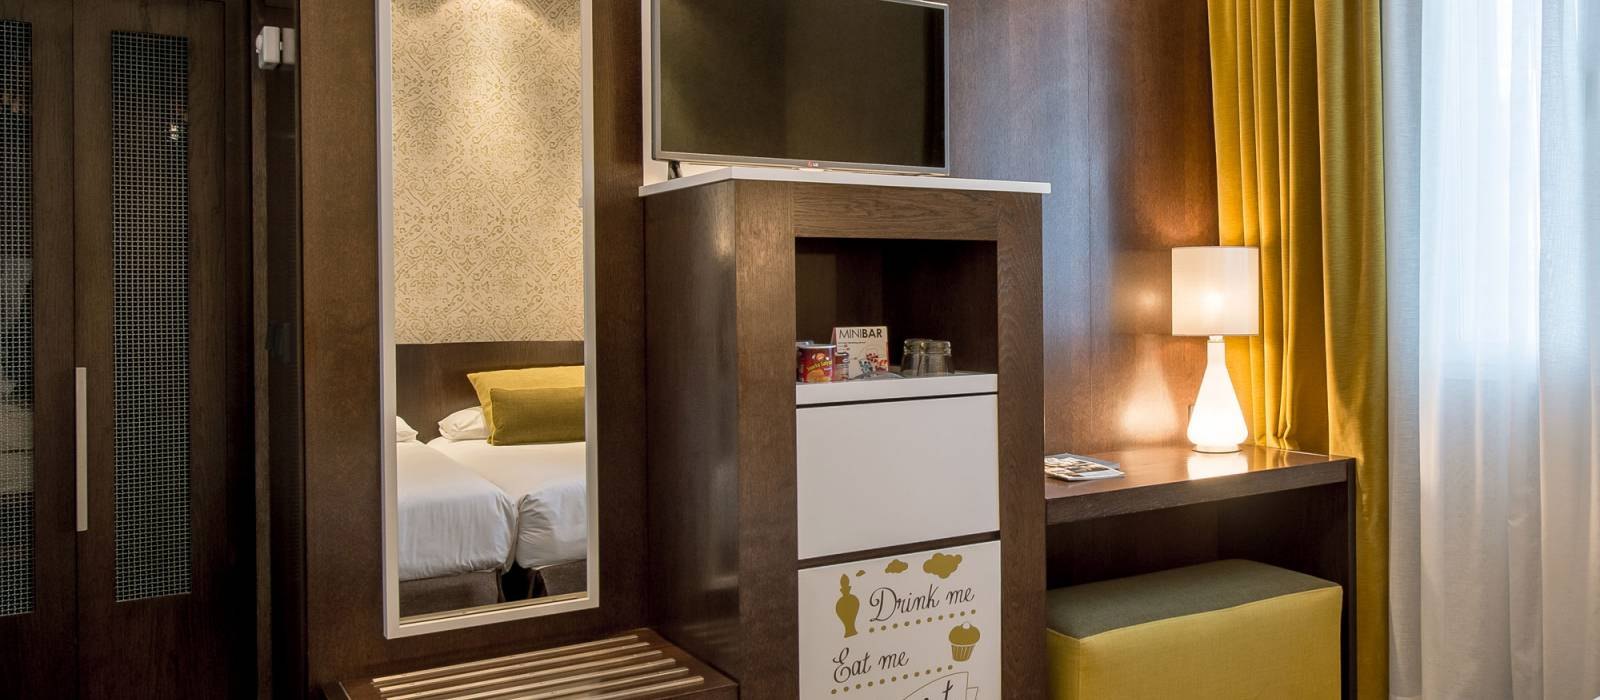 Stay 4 nights and save 15% - Vincci Centrum